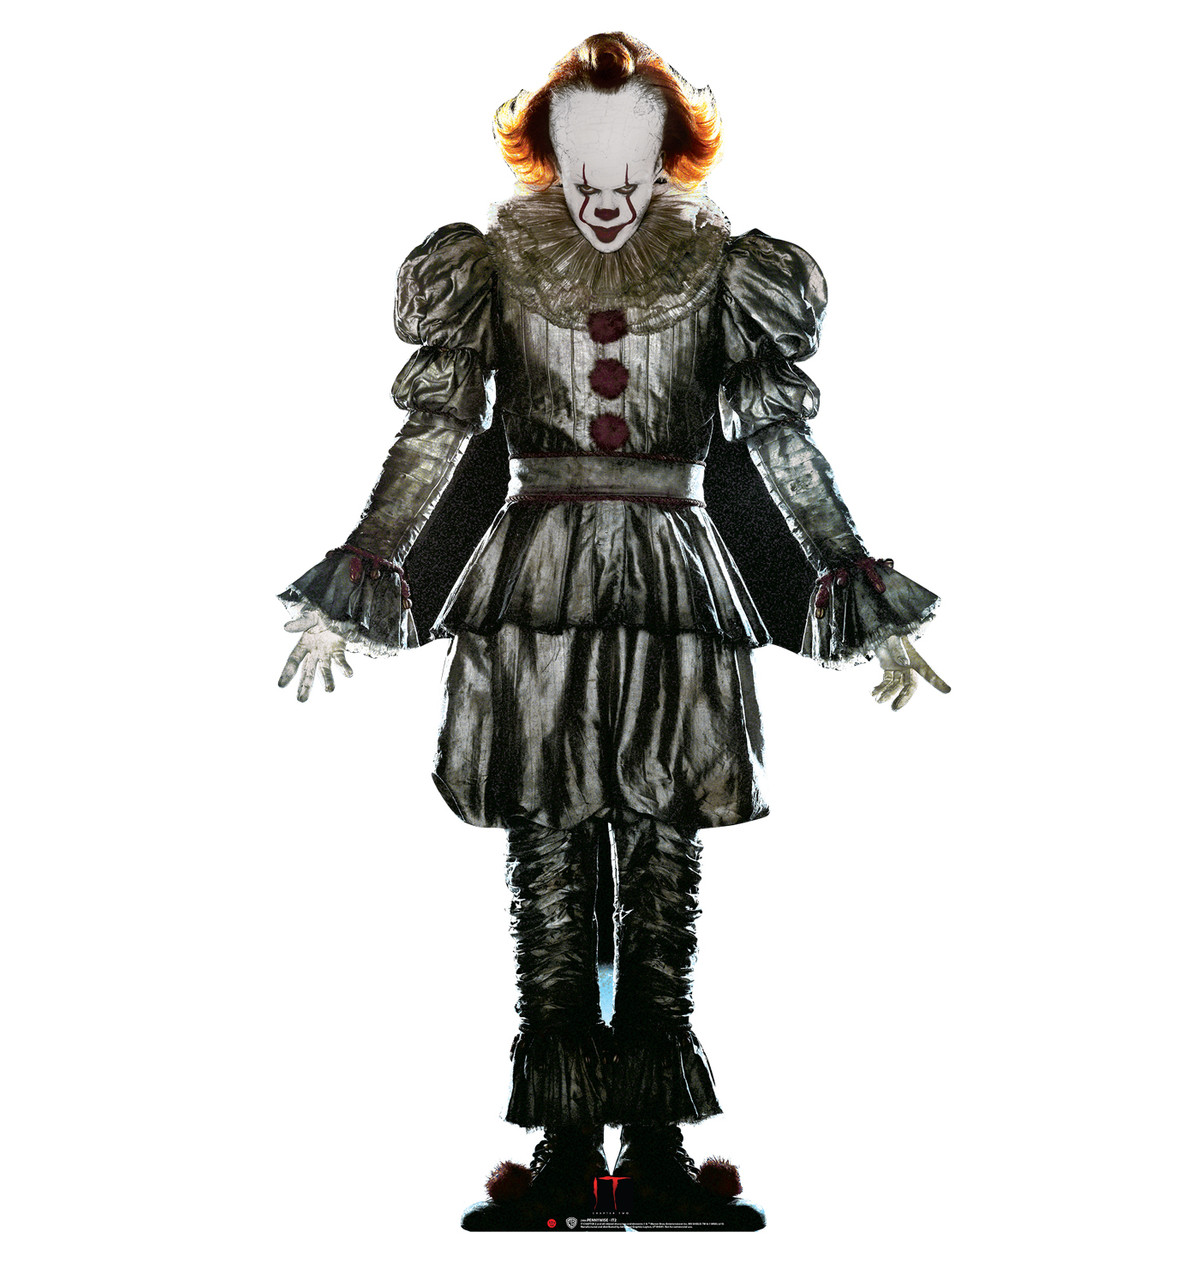 Pennywise from IT Chapter 2 Movie 2019 Cardboard Front View